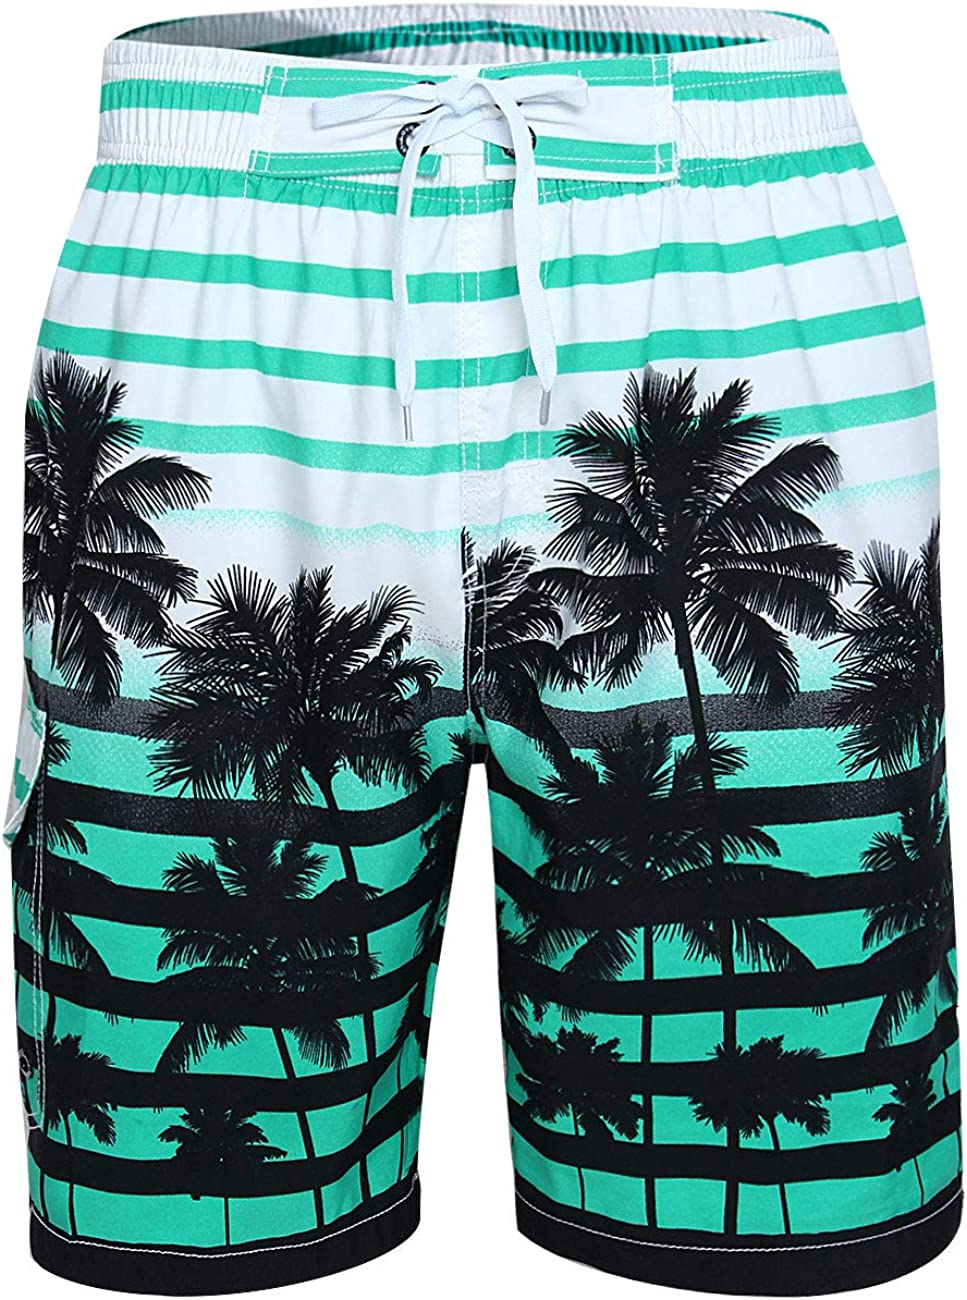 Cogild Mens Swim Trunks, Colorful Printed Coconut Tree Long Swimming Trunks, Quick Dry Board Shorts with Mesh Lining